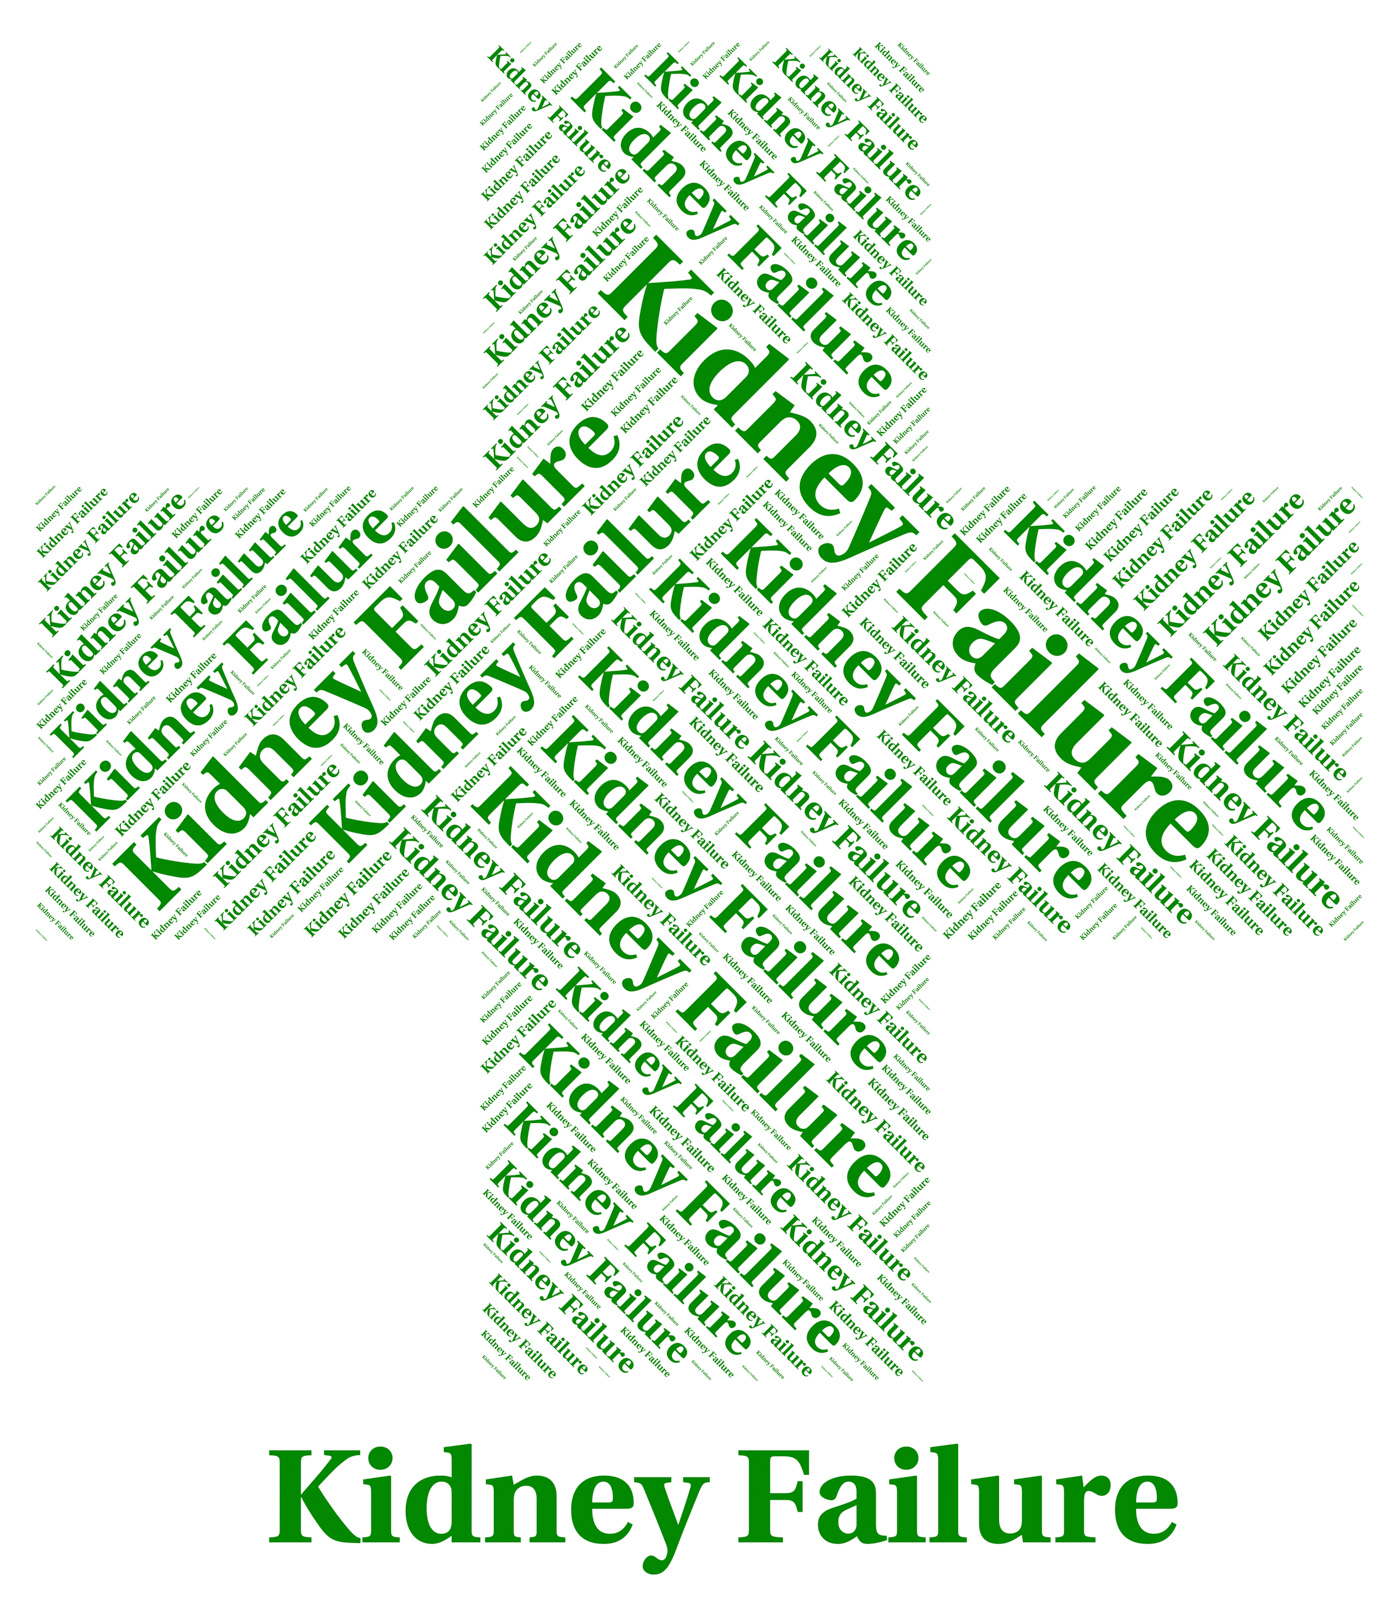 Kidney Failure Shows Lack Of Success And Affliction, Ill, Sickness, Sick, Poorhealth, HQ Photo